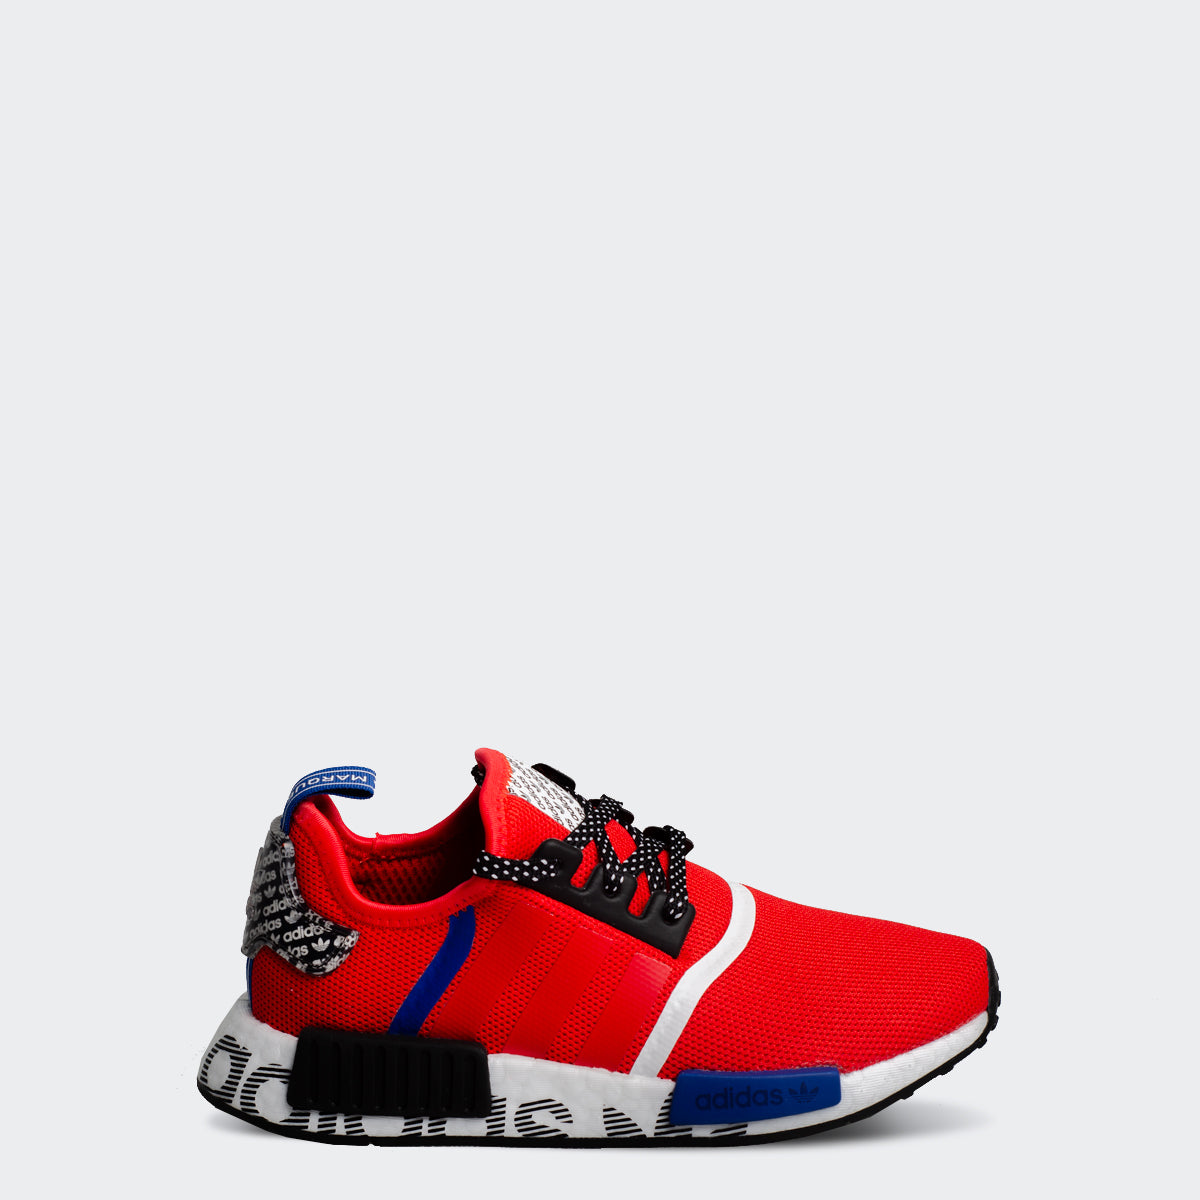 Adidas Nmd R1 Shoes Active Red Fv5330 Chicago City Sports